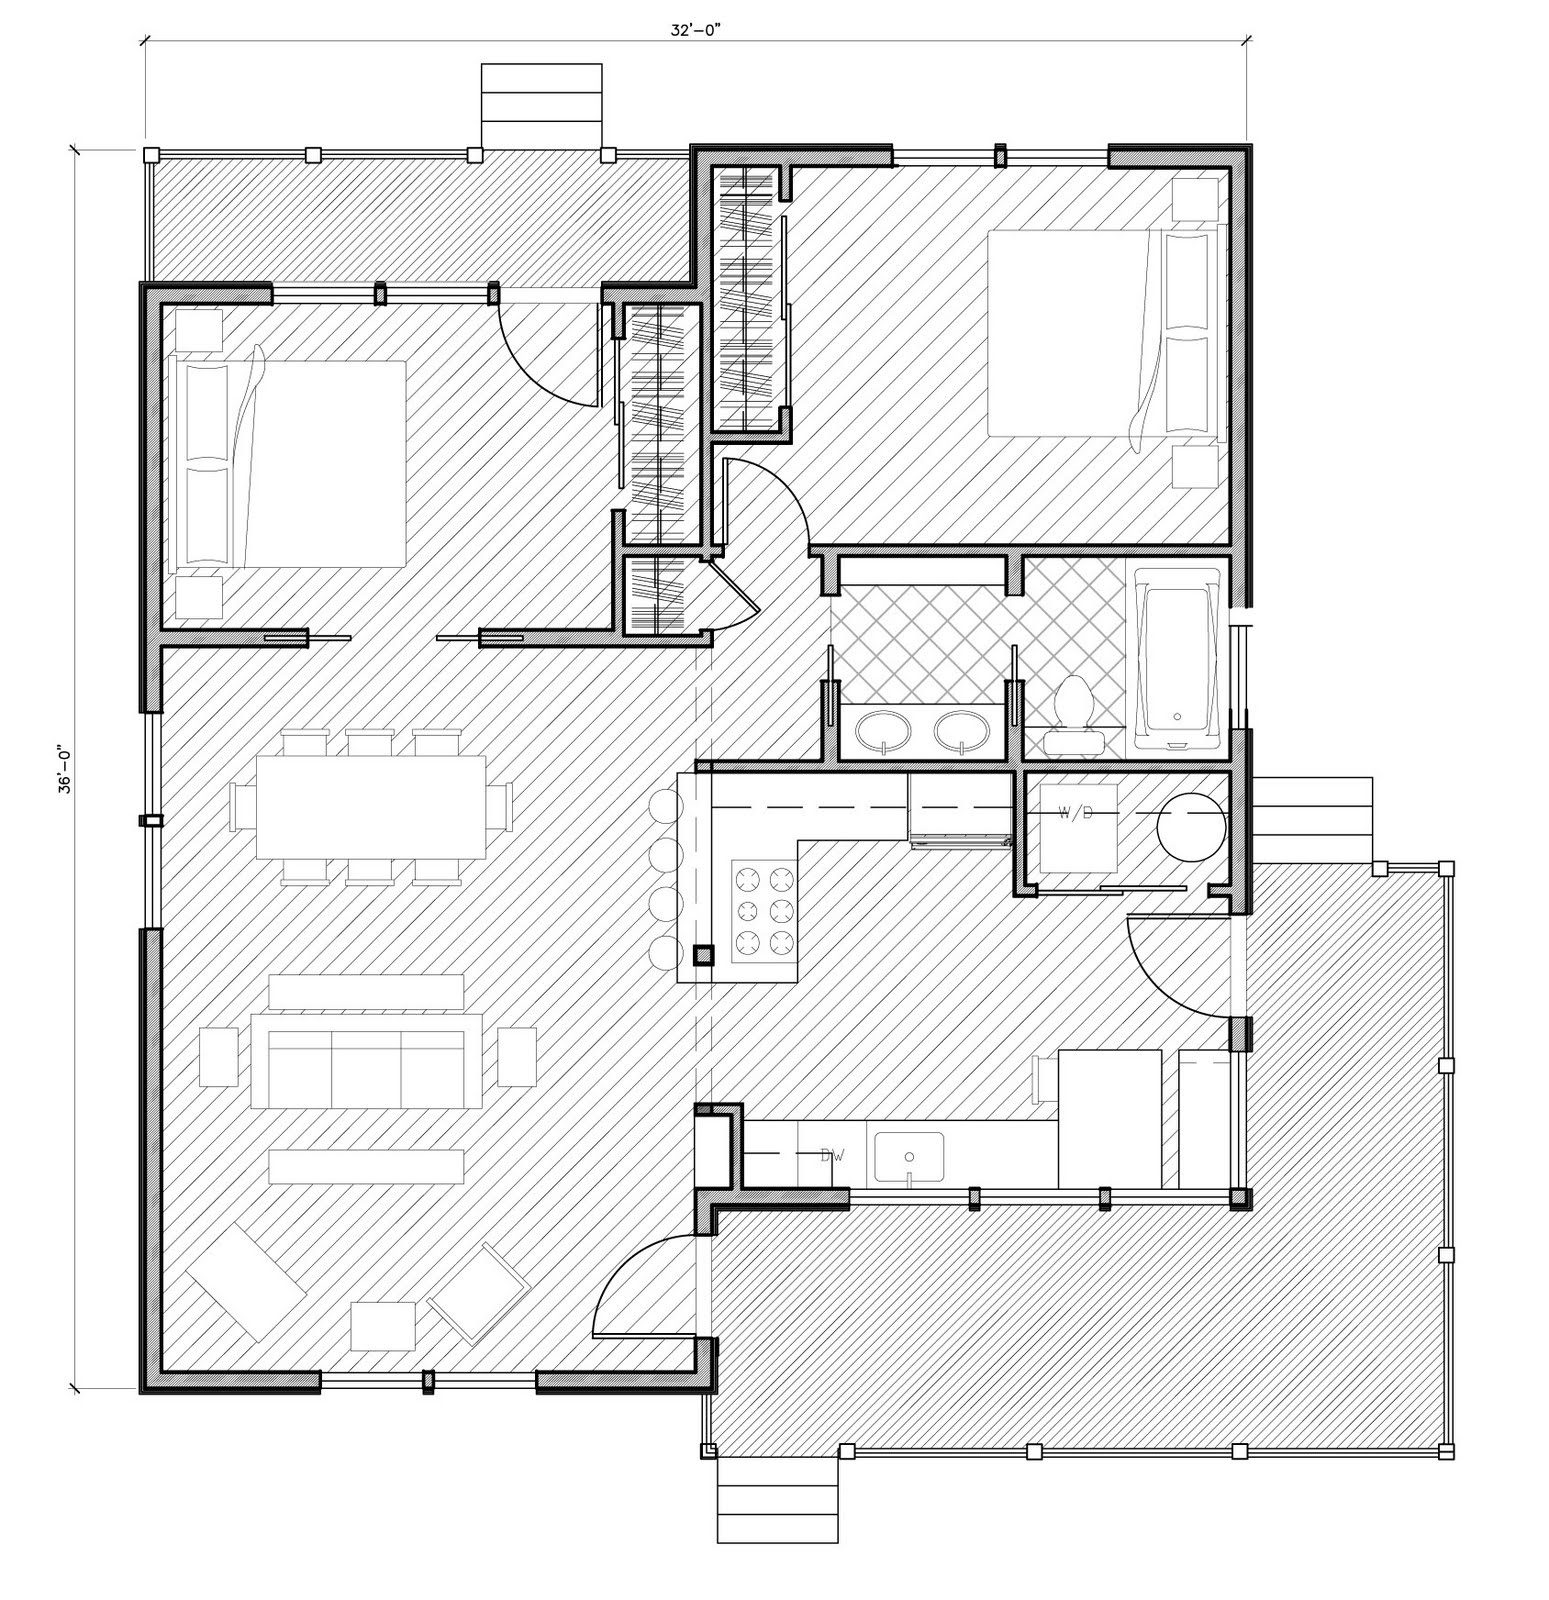 Design Banter More D A Home Plans 3 Plans Under 1 100